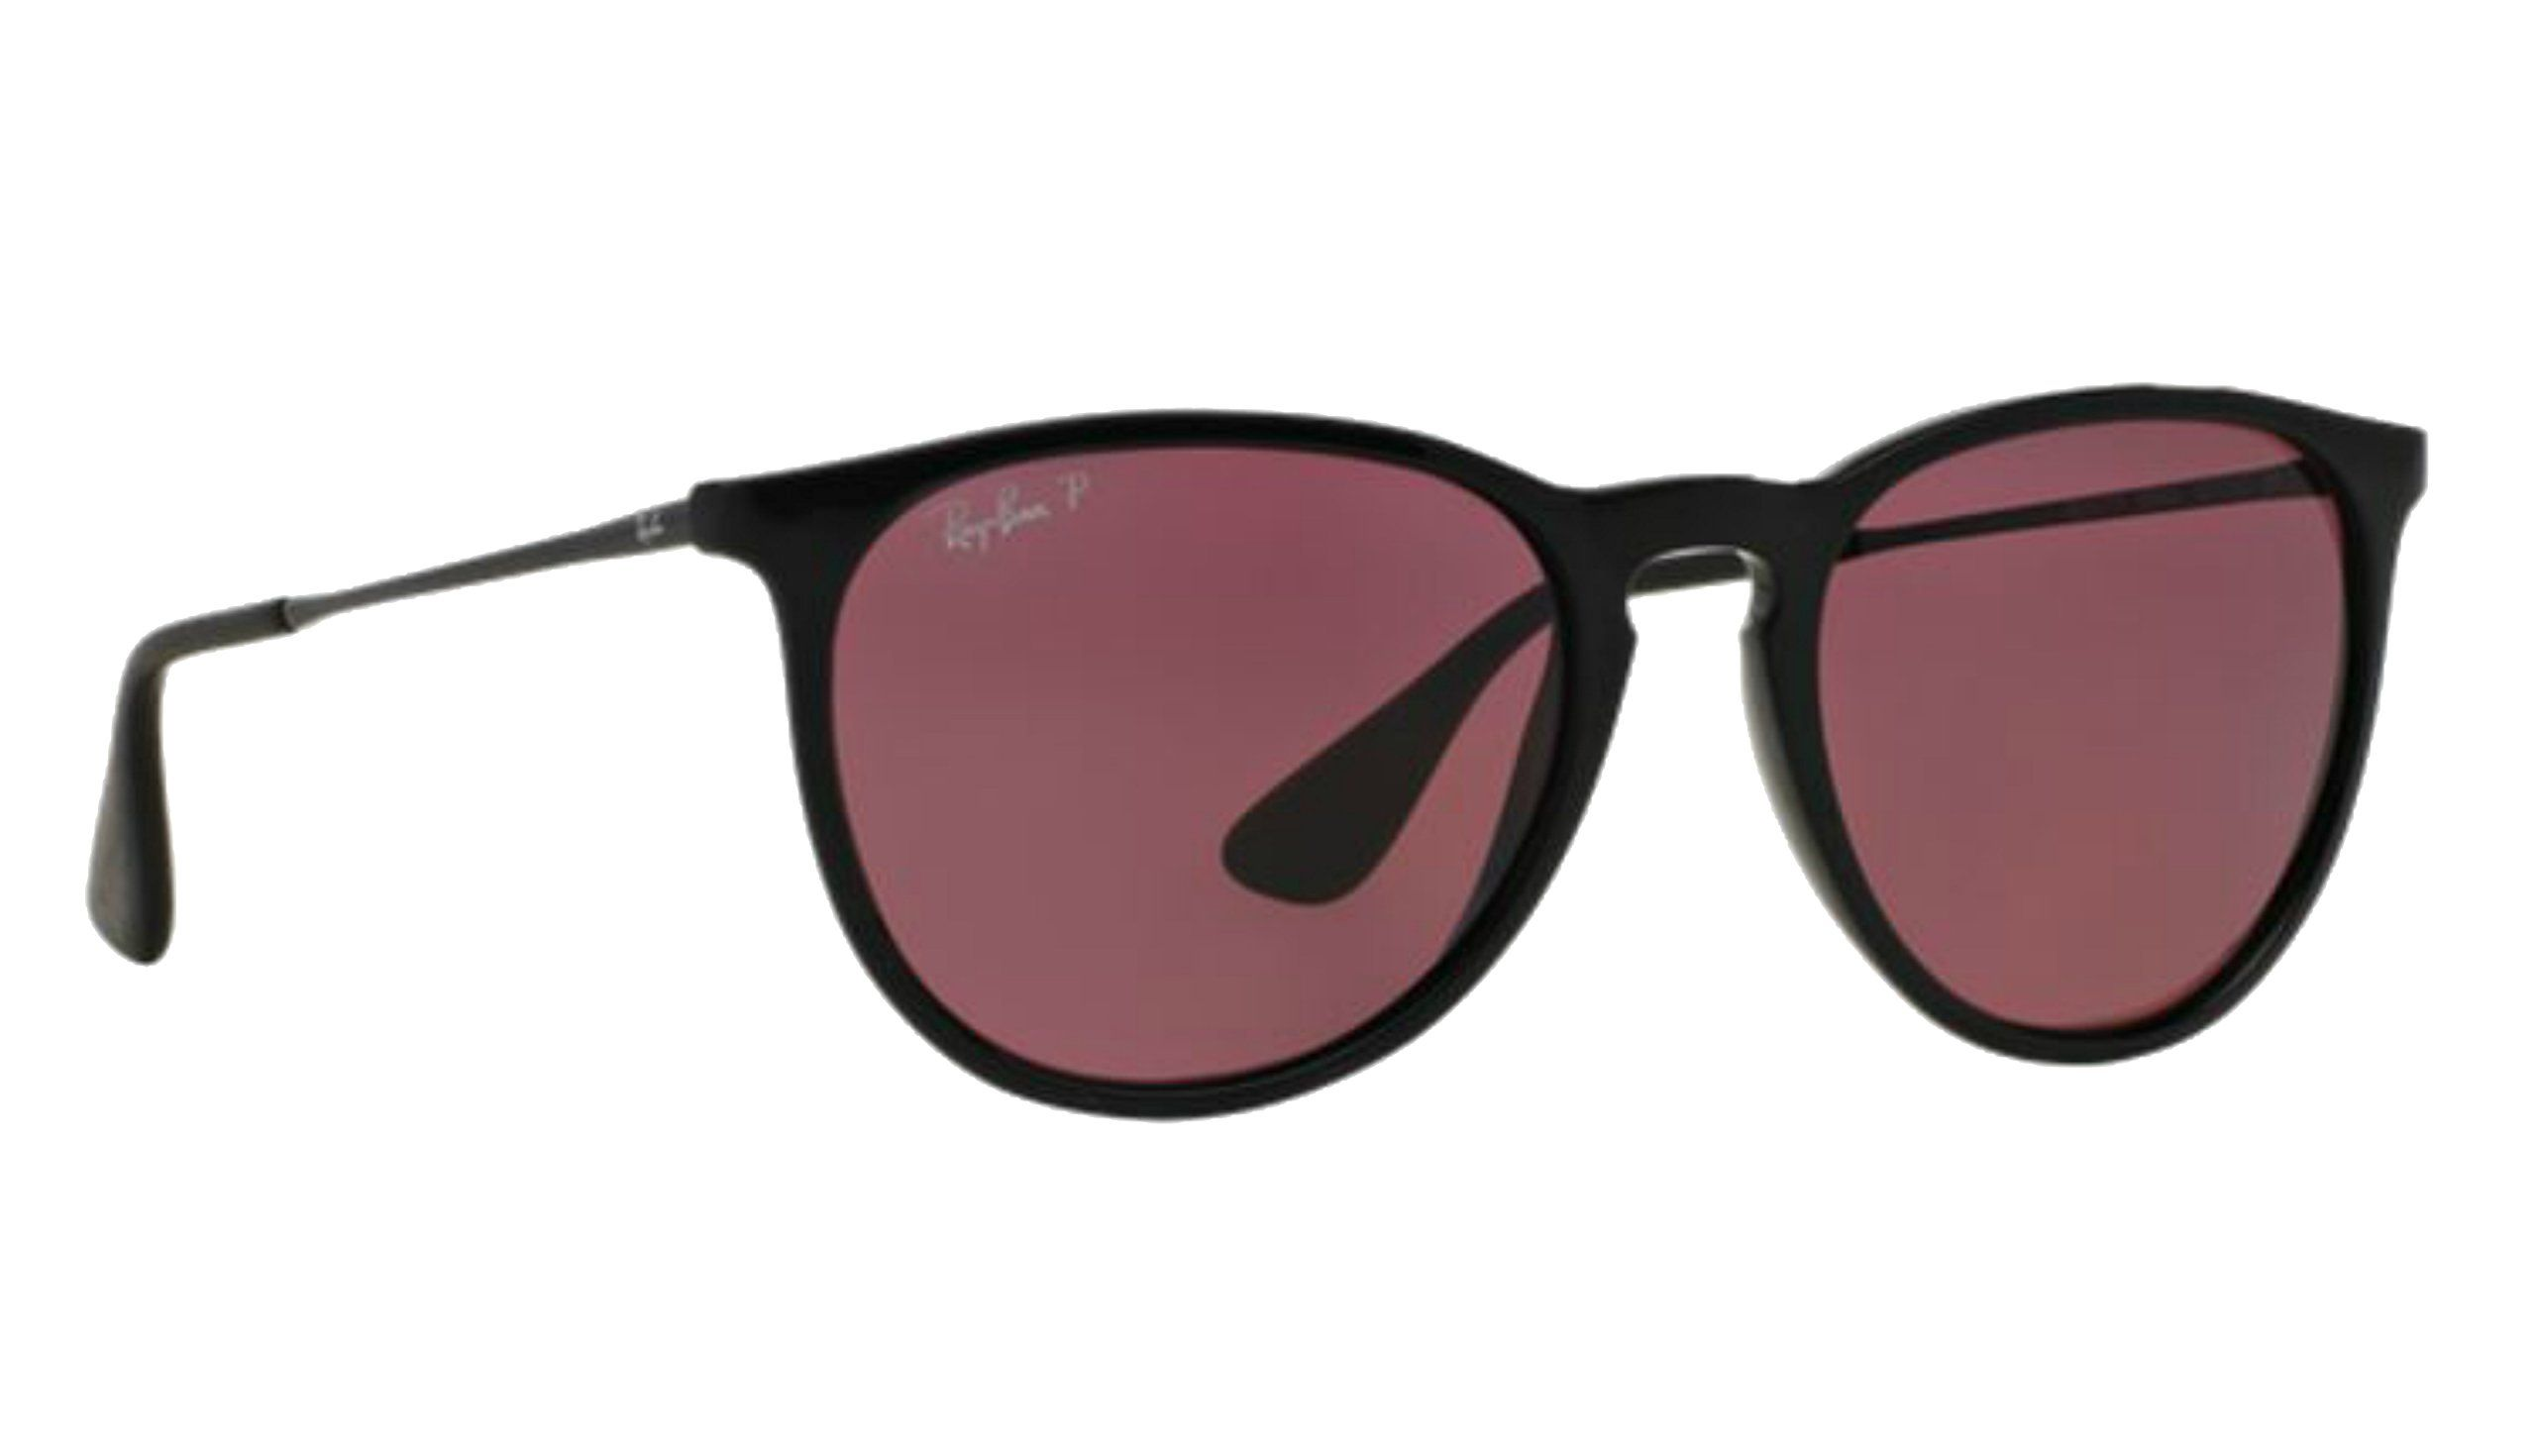 ray ban made in italy dz8e  Ray-Ban Purple Polarized Erika Sunglasses RB 4171 + SD Glasses + Kit Made  in Italy Includes Free Pair of ShadesDaddy Glasses + Cleaning KIT